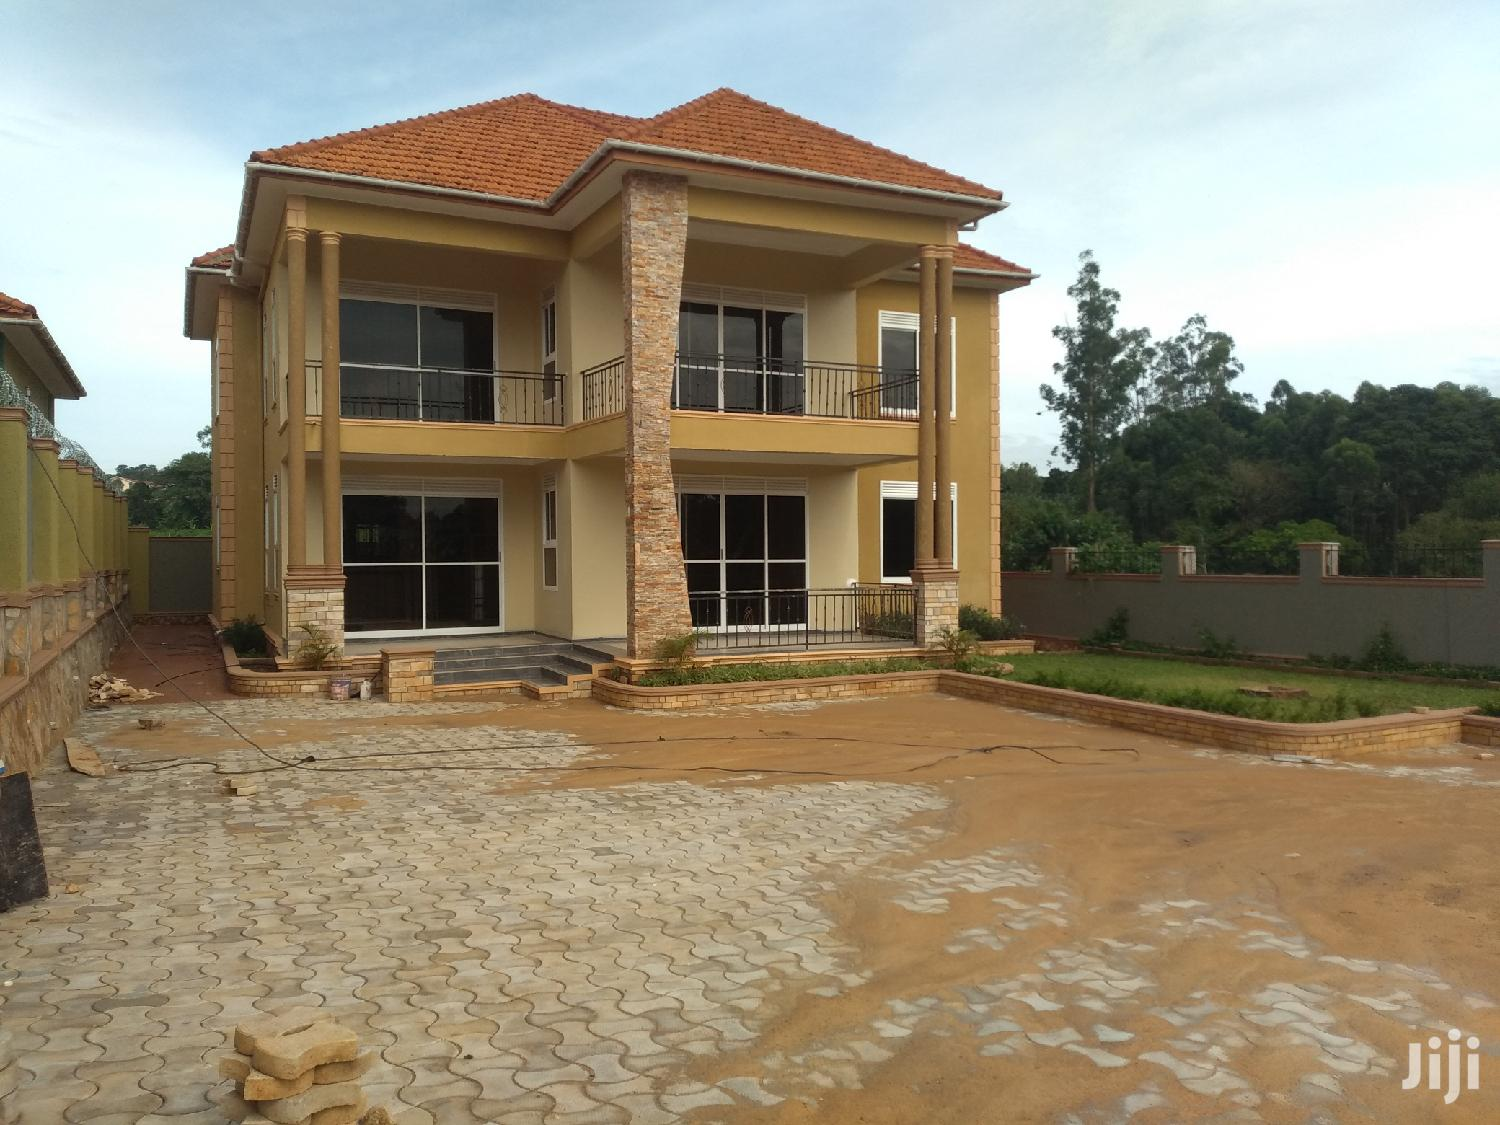 Five Bedrooms Storied House for Sale in Kira With Ready Land Title